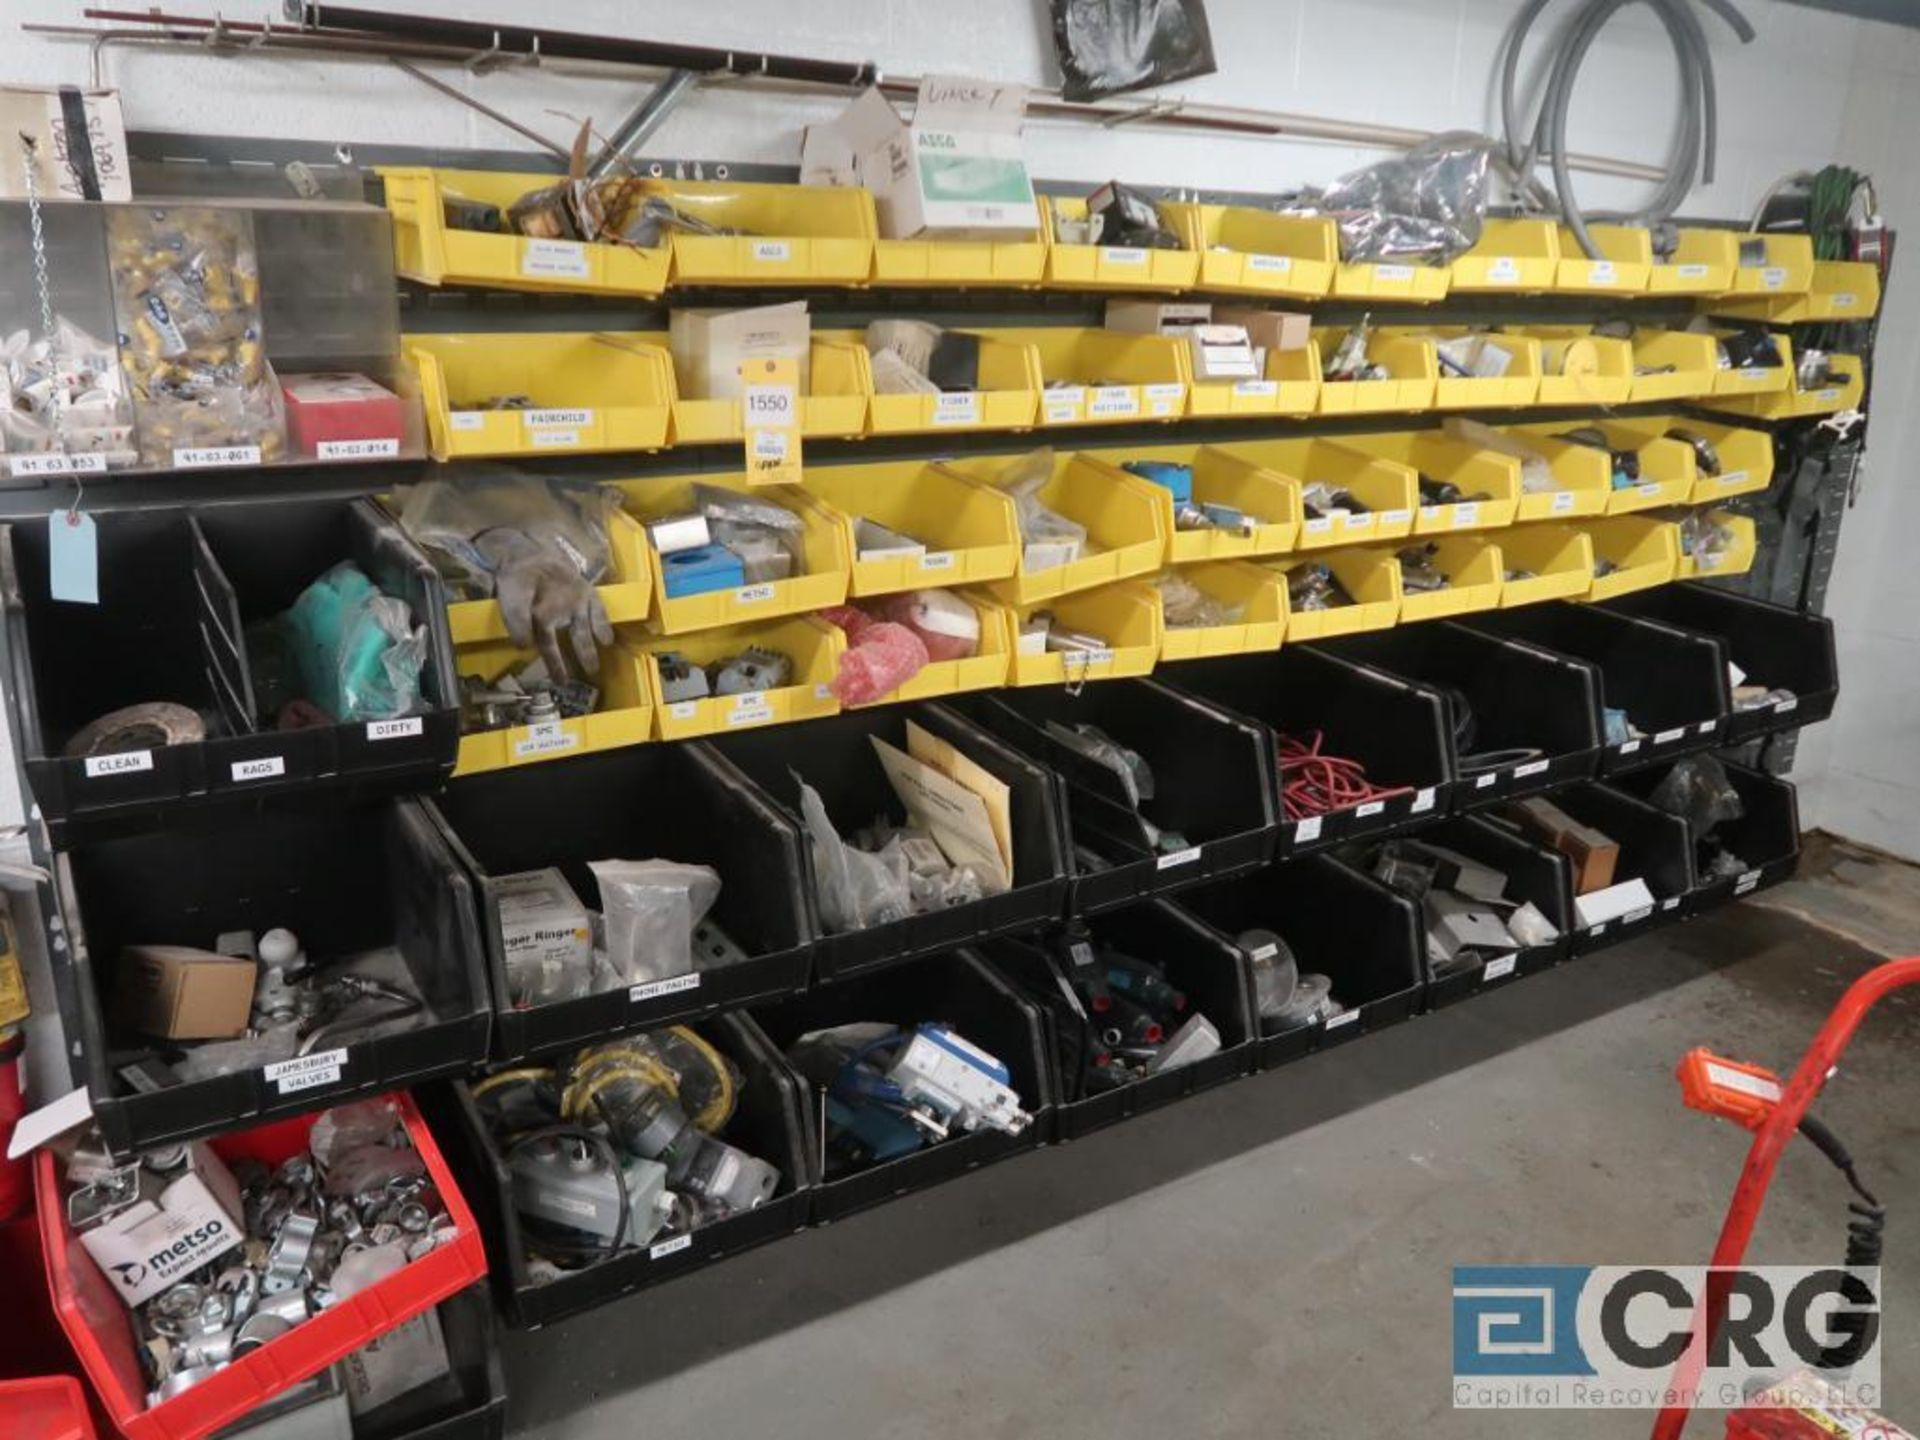 Lot of miscellaneous items including connectors, mounting brackets, regulators, thermometers,